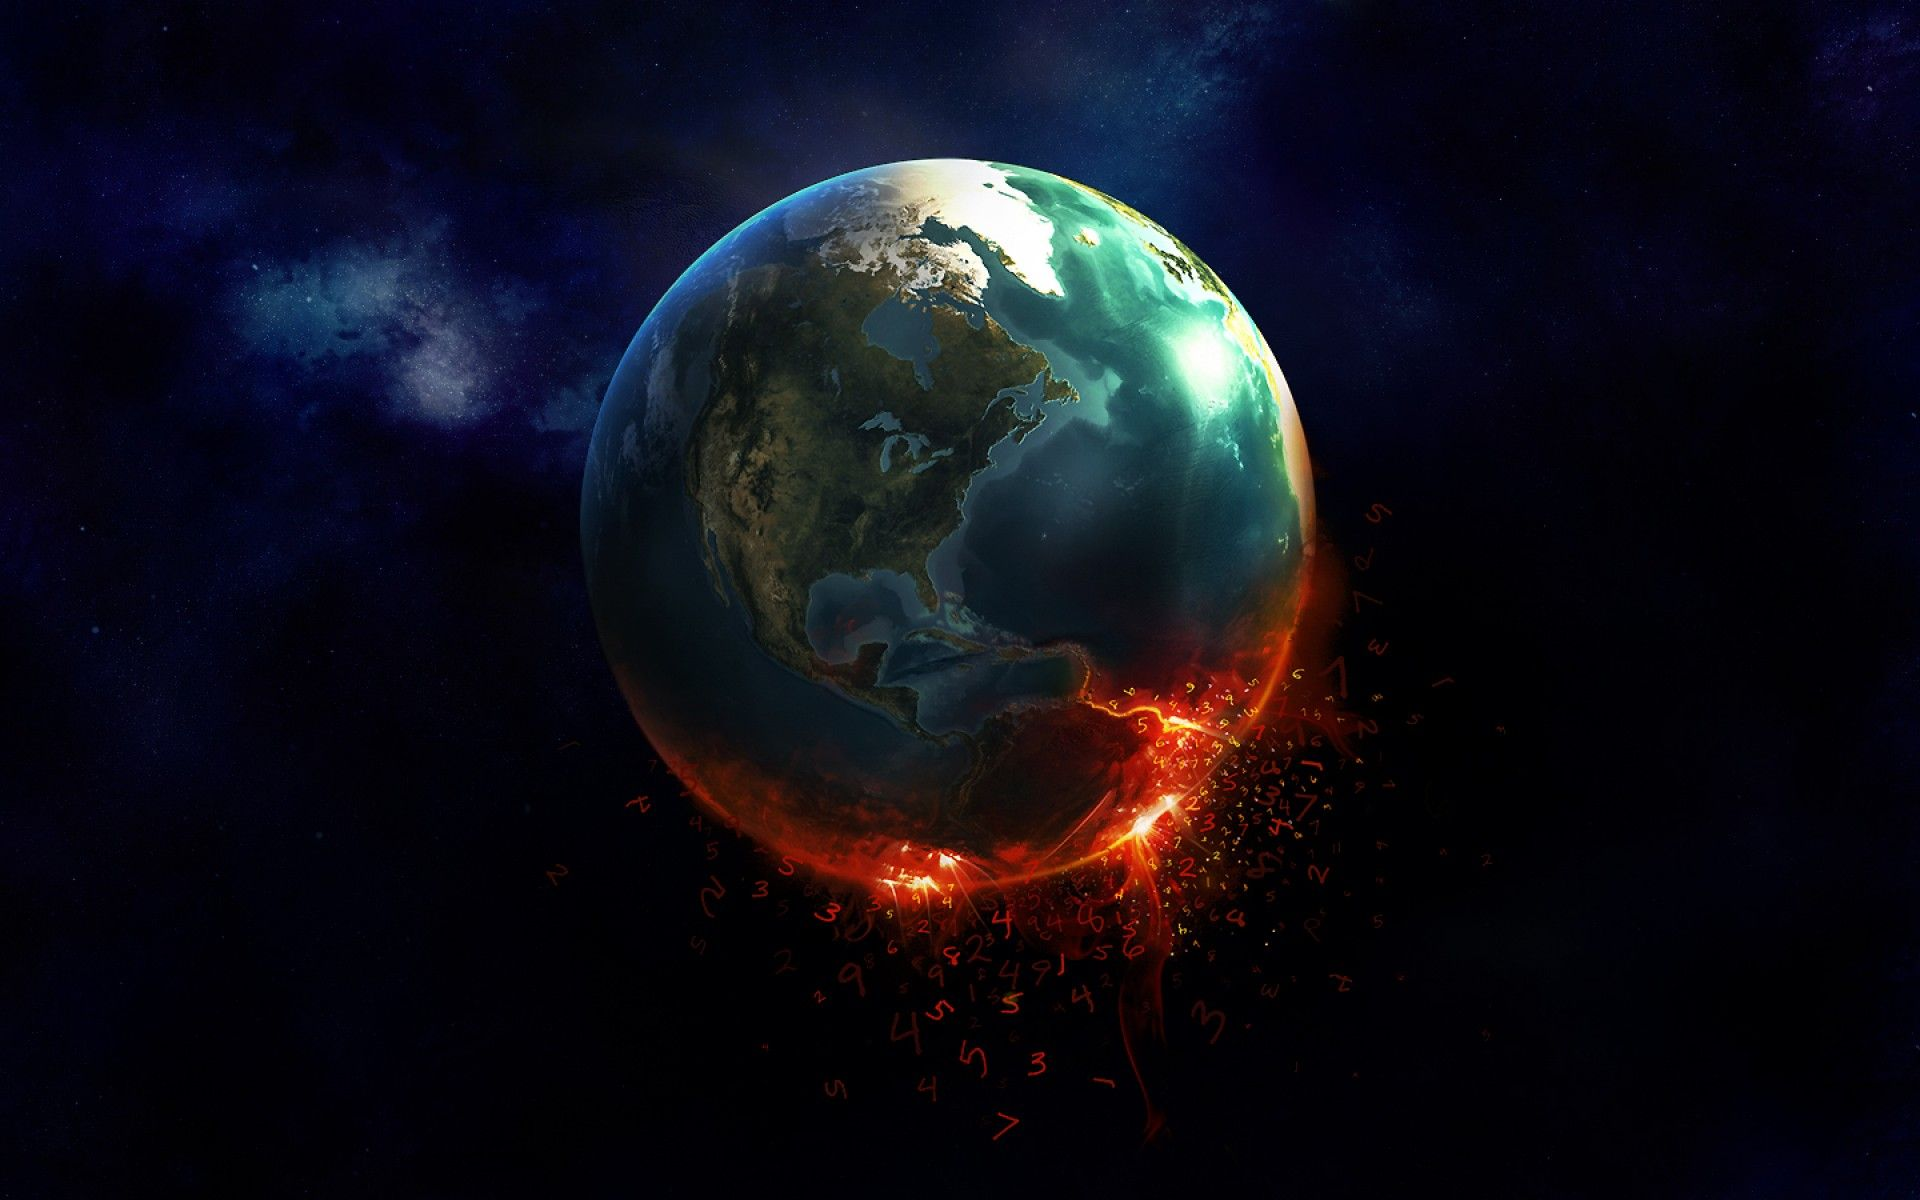 Space Earth Cool Pictures Planets Wallpaper Earth Planets